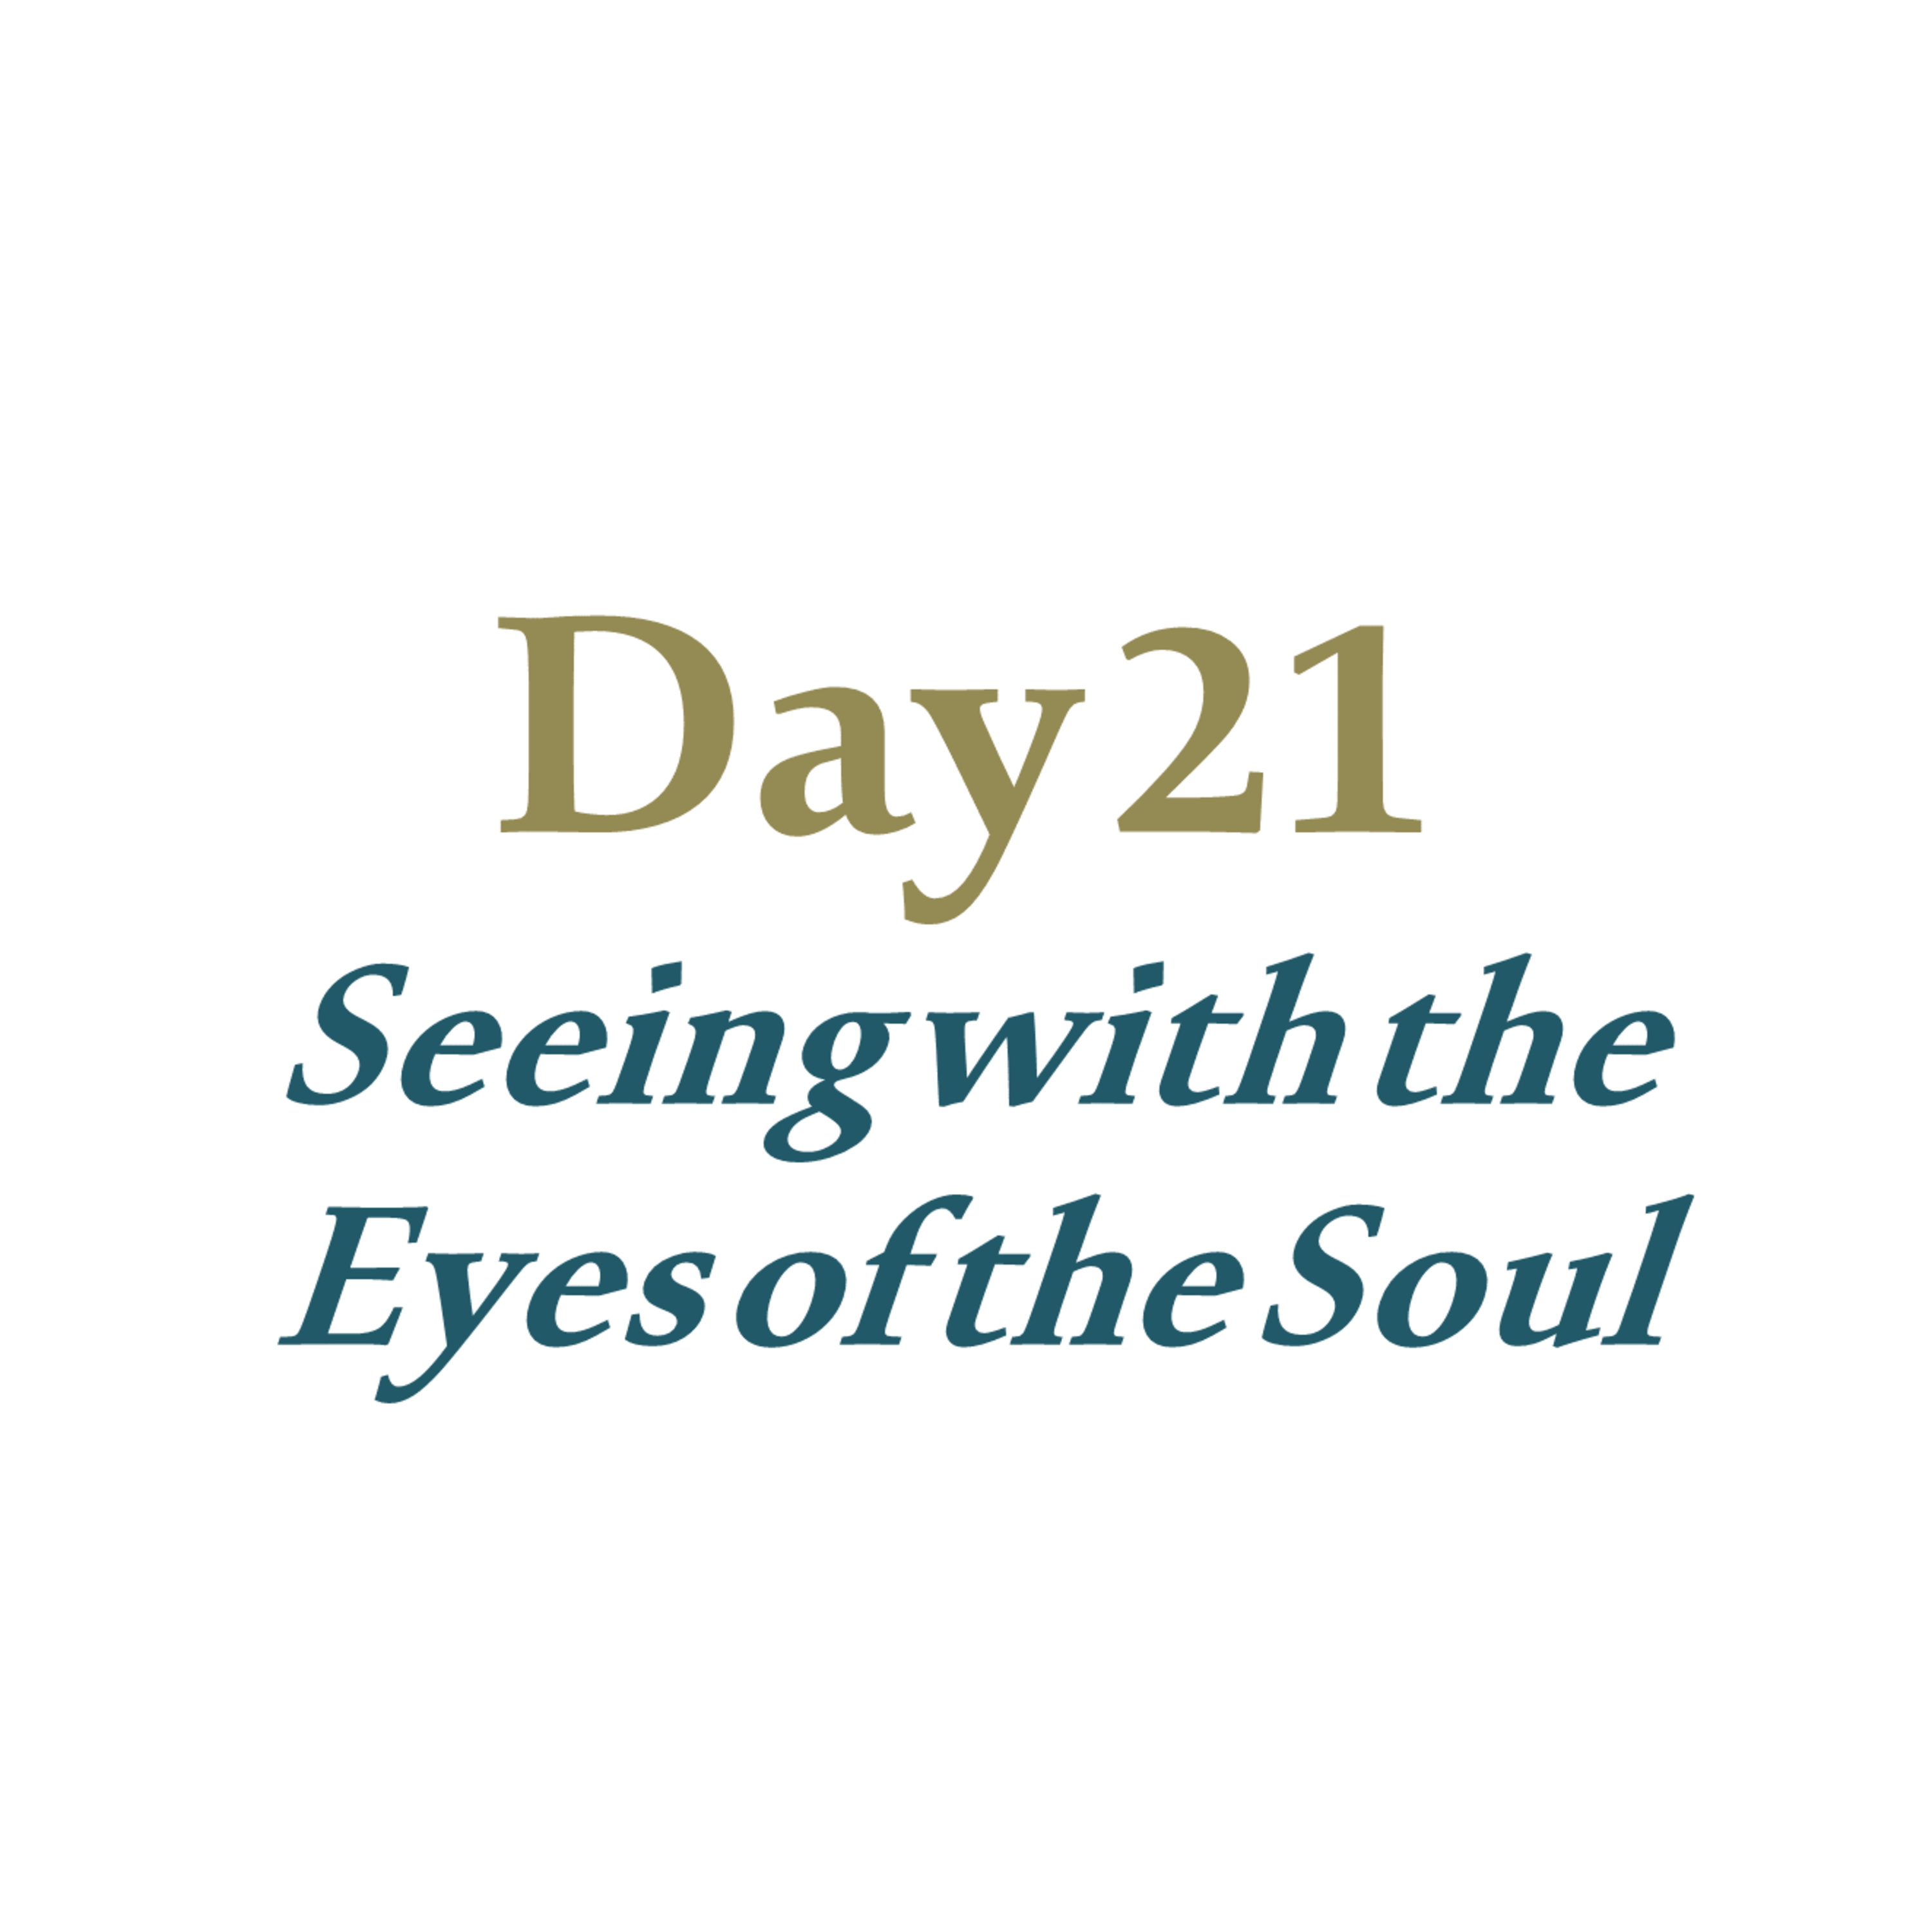 Day 21 - Seeing with the Eyes of the Soul